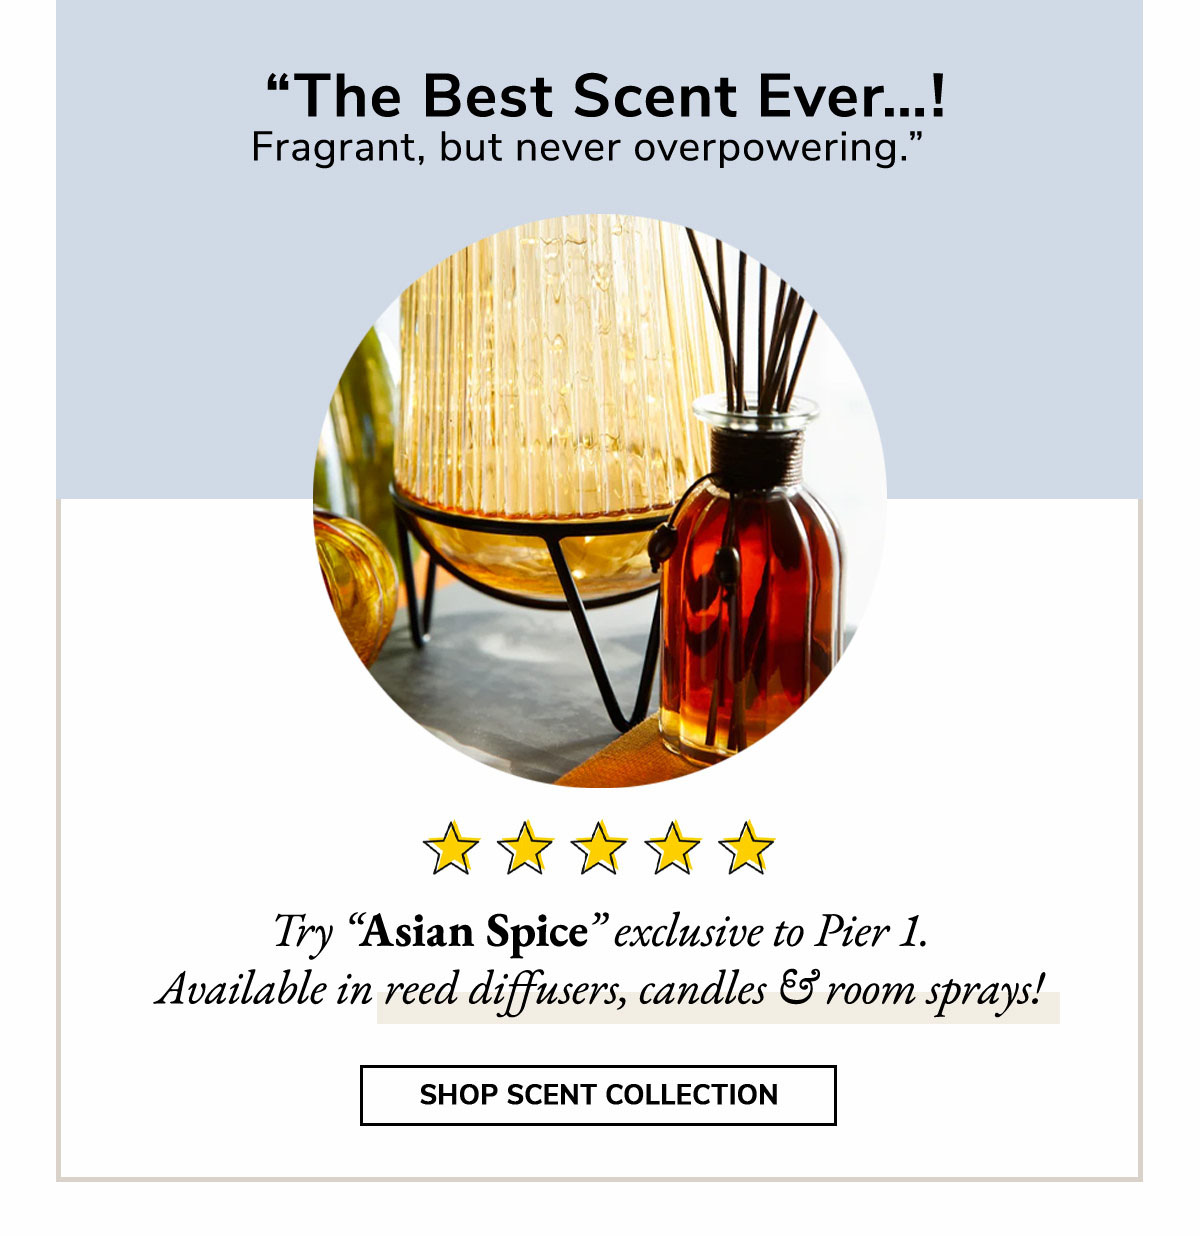 The best scent ever! Fragrant, but never overpowering. Try Asian Spice, exclusive to Pier 1.